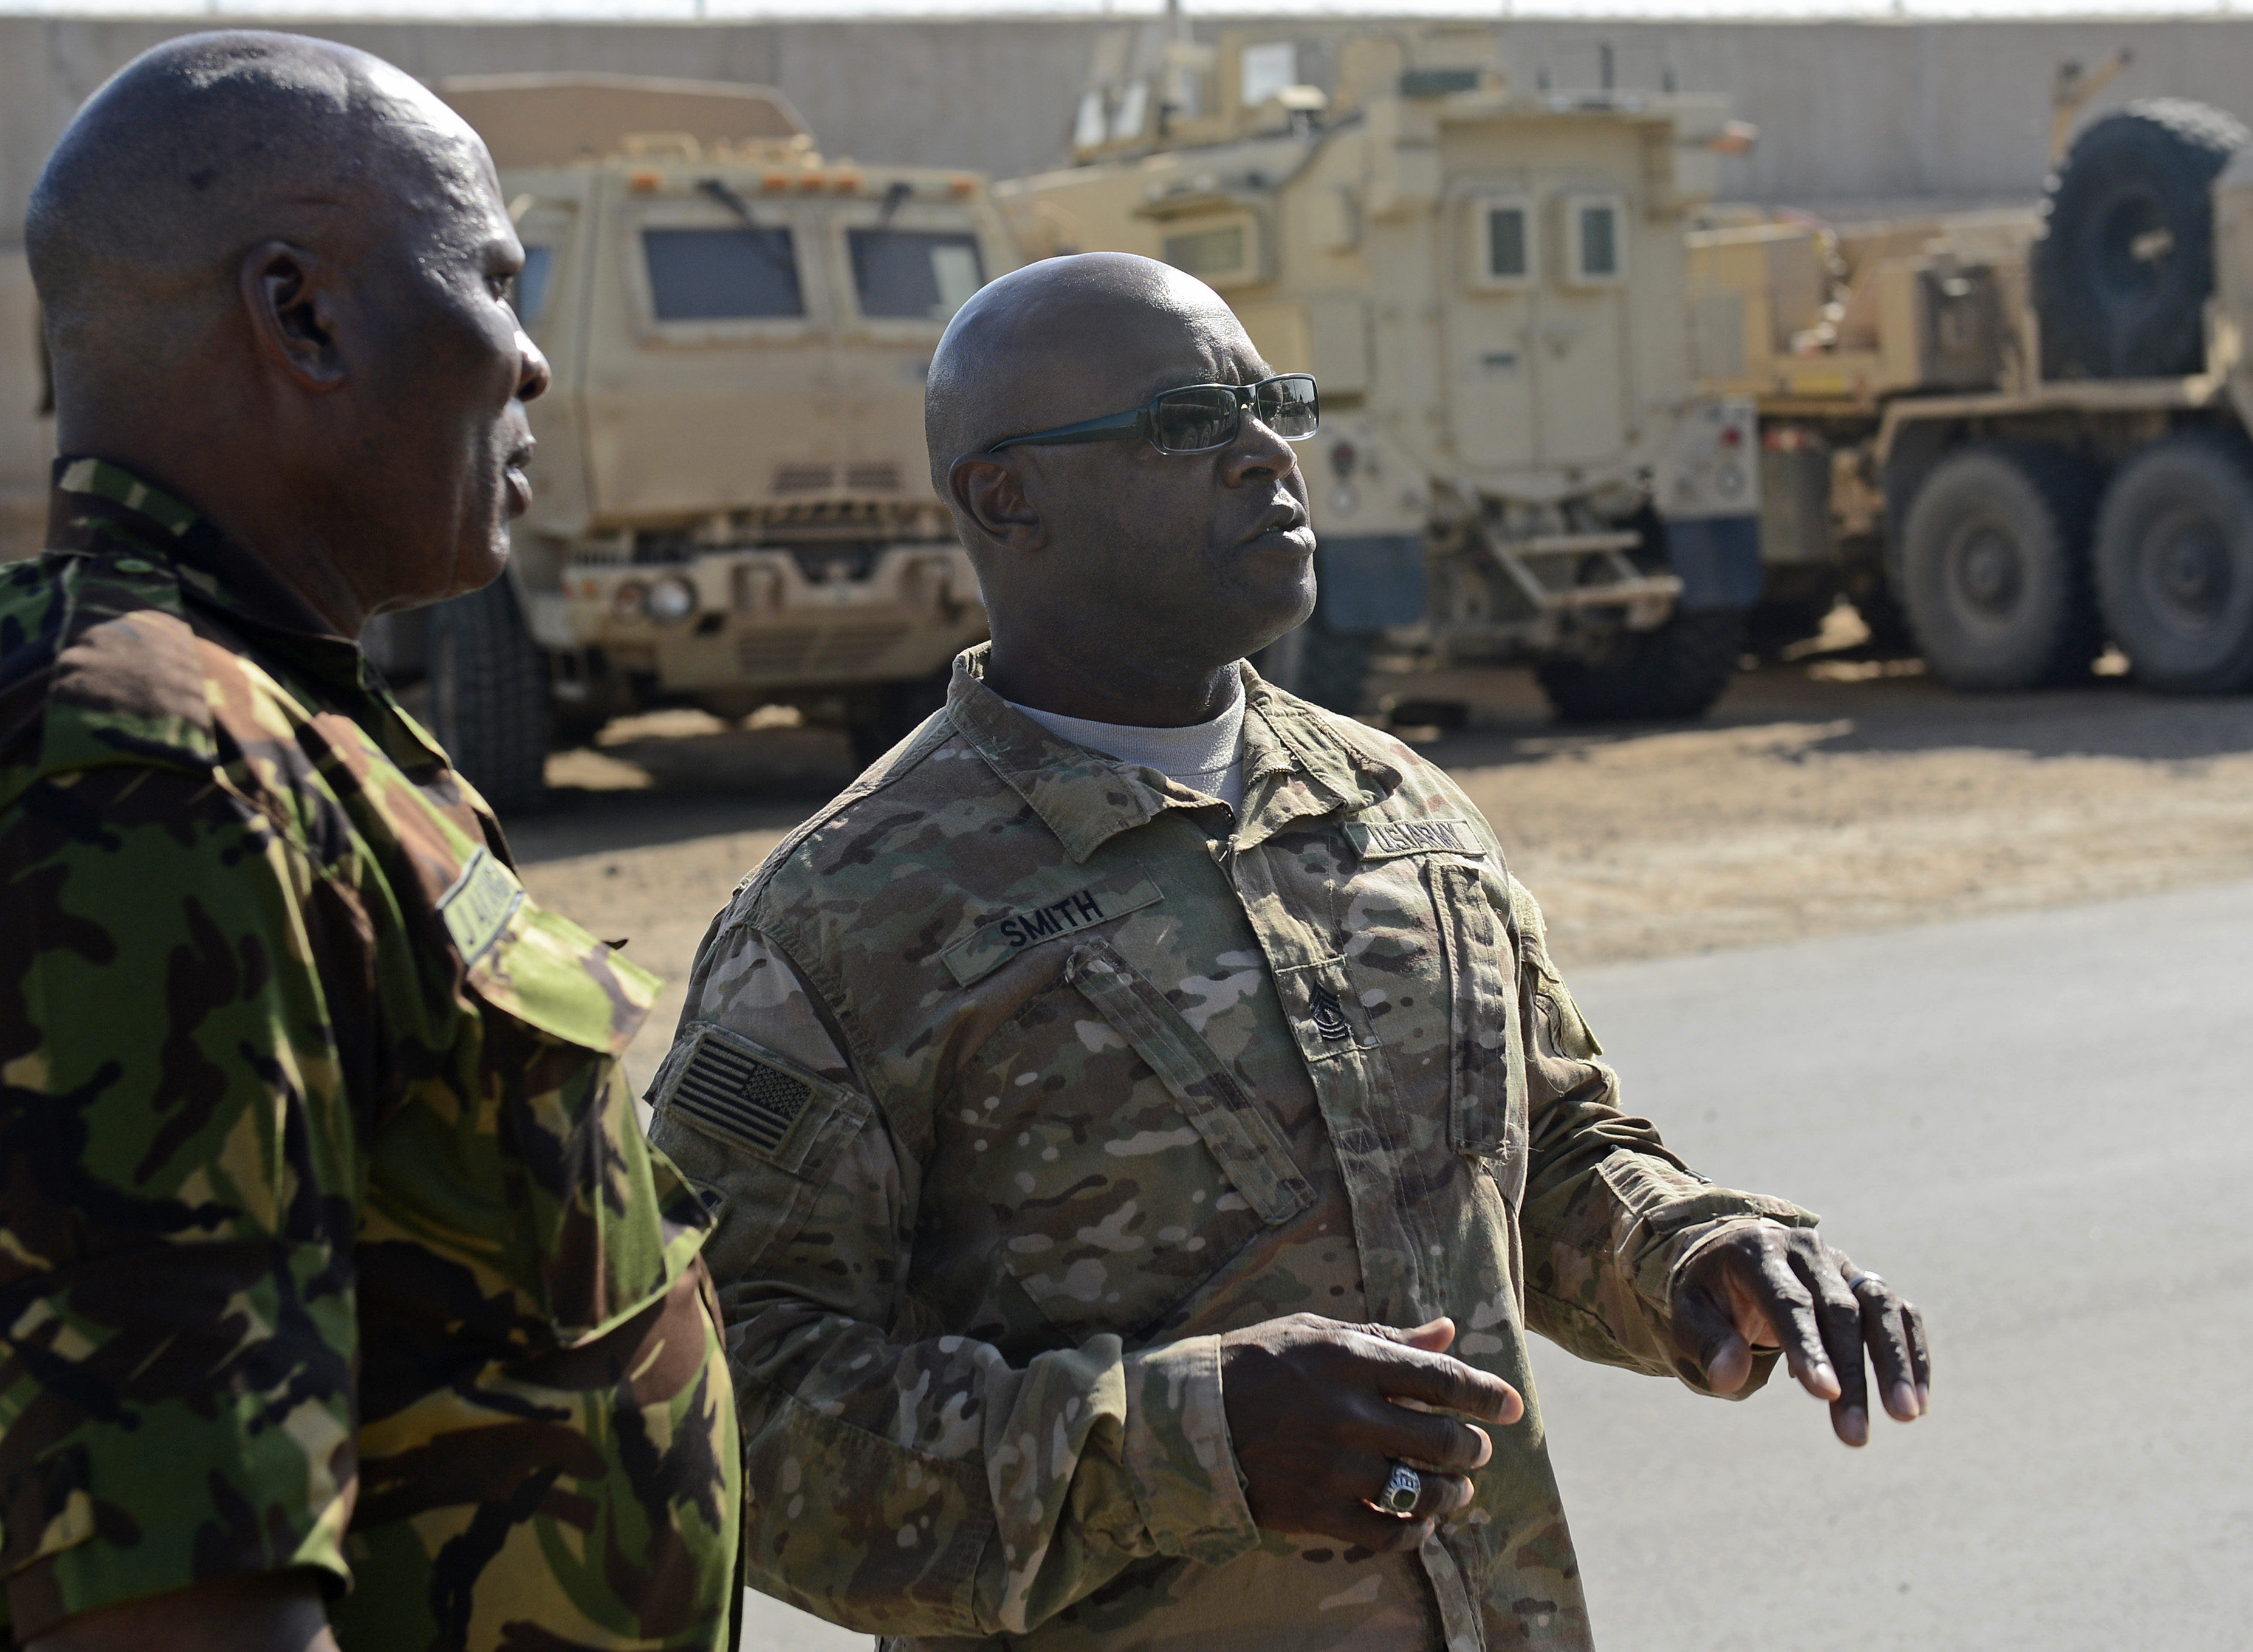 U.S. Army 1st Sgt. Harper Smith, 2-124 Foxtrot Company first sergeant (right), discusses the Combined Joint Task Force-Horn of Africa's motor pool capabilities with Kenya Army Warrant Officer James Omollo, Kenya Army sergeant major, Feb. 10, 2016, at Camp Lemonnier, Djibouti. Along with providing important information and gaining insight into the younger members' mindset, they spent an afternoon with their CJTF-HOA equivalent to see first-hand how each U.S. SEL led the enlisted force. (U.S. Air Force photo by Senior Airman Peter Thompson)